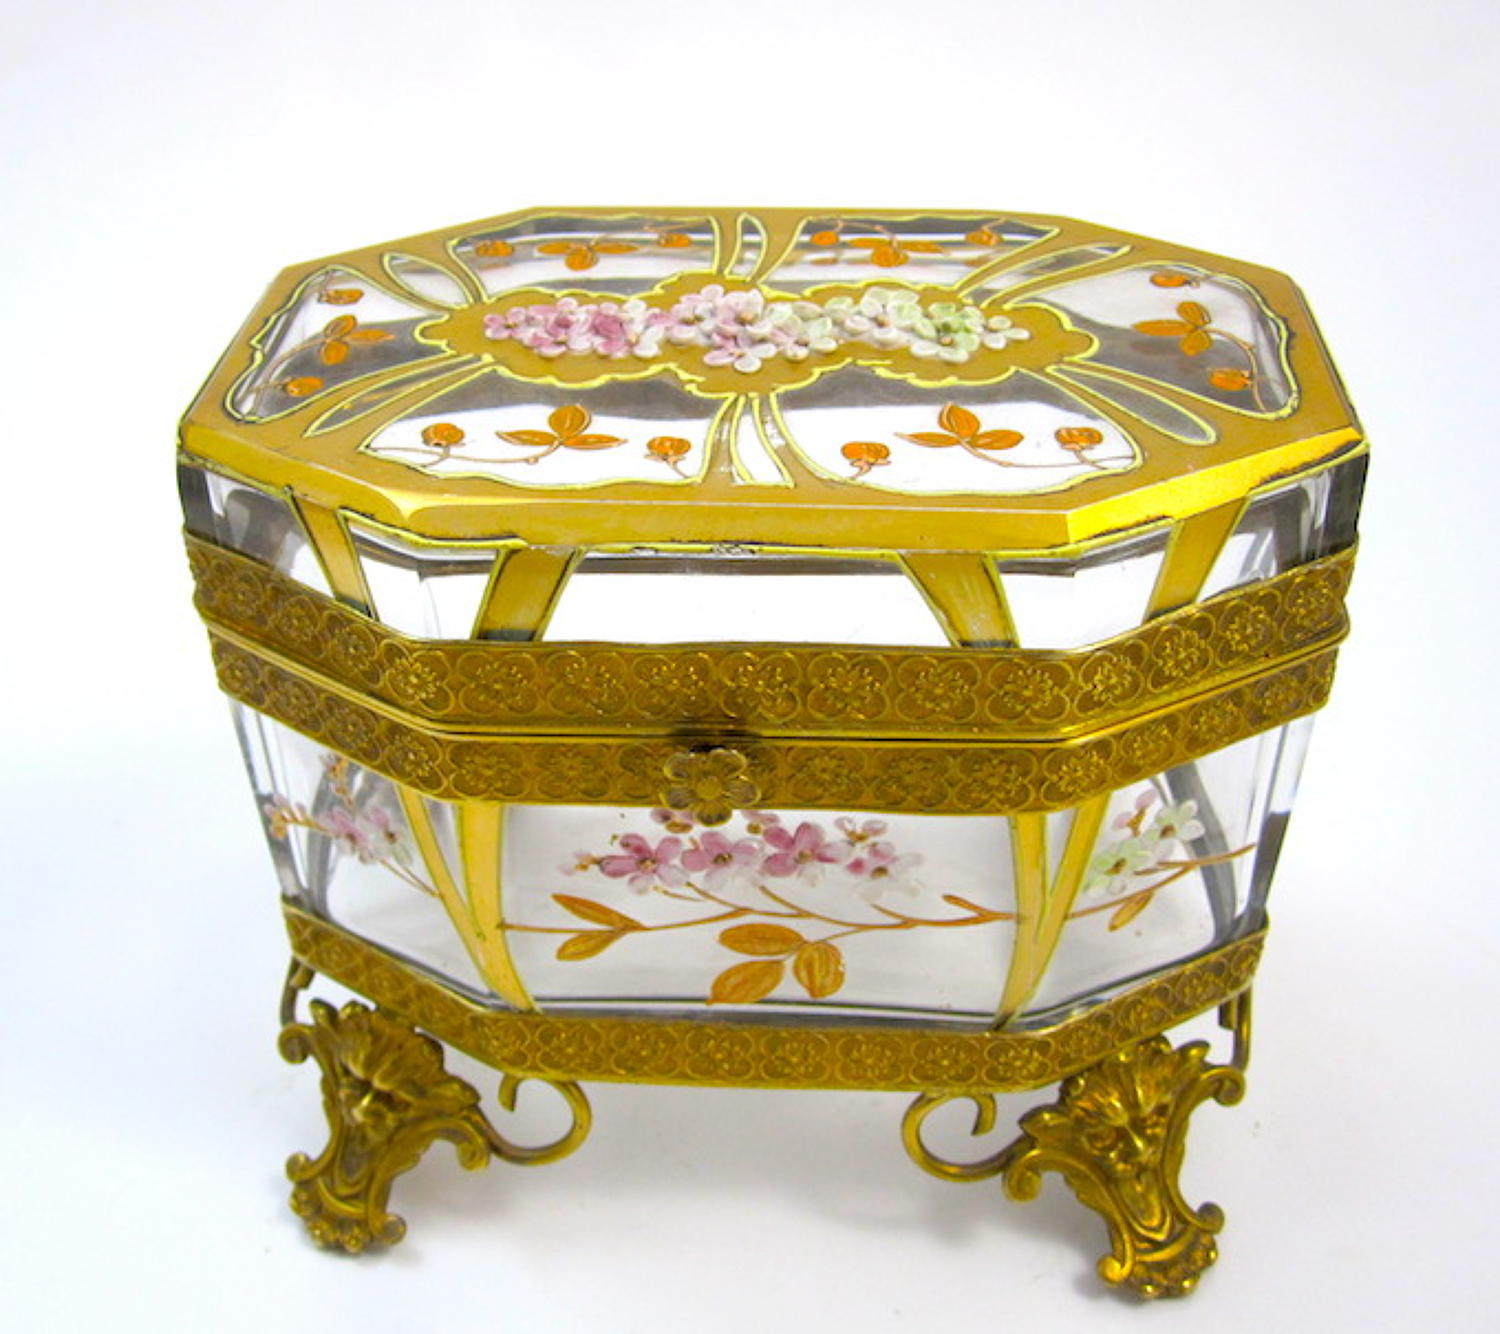 Antique MOSER Art Nouveau Glass Casket with Cherry Blossom Design